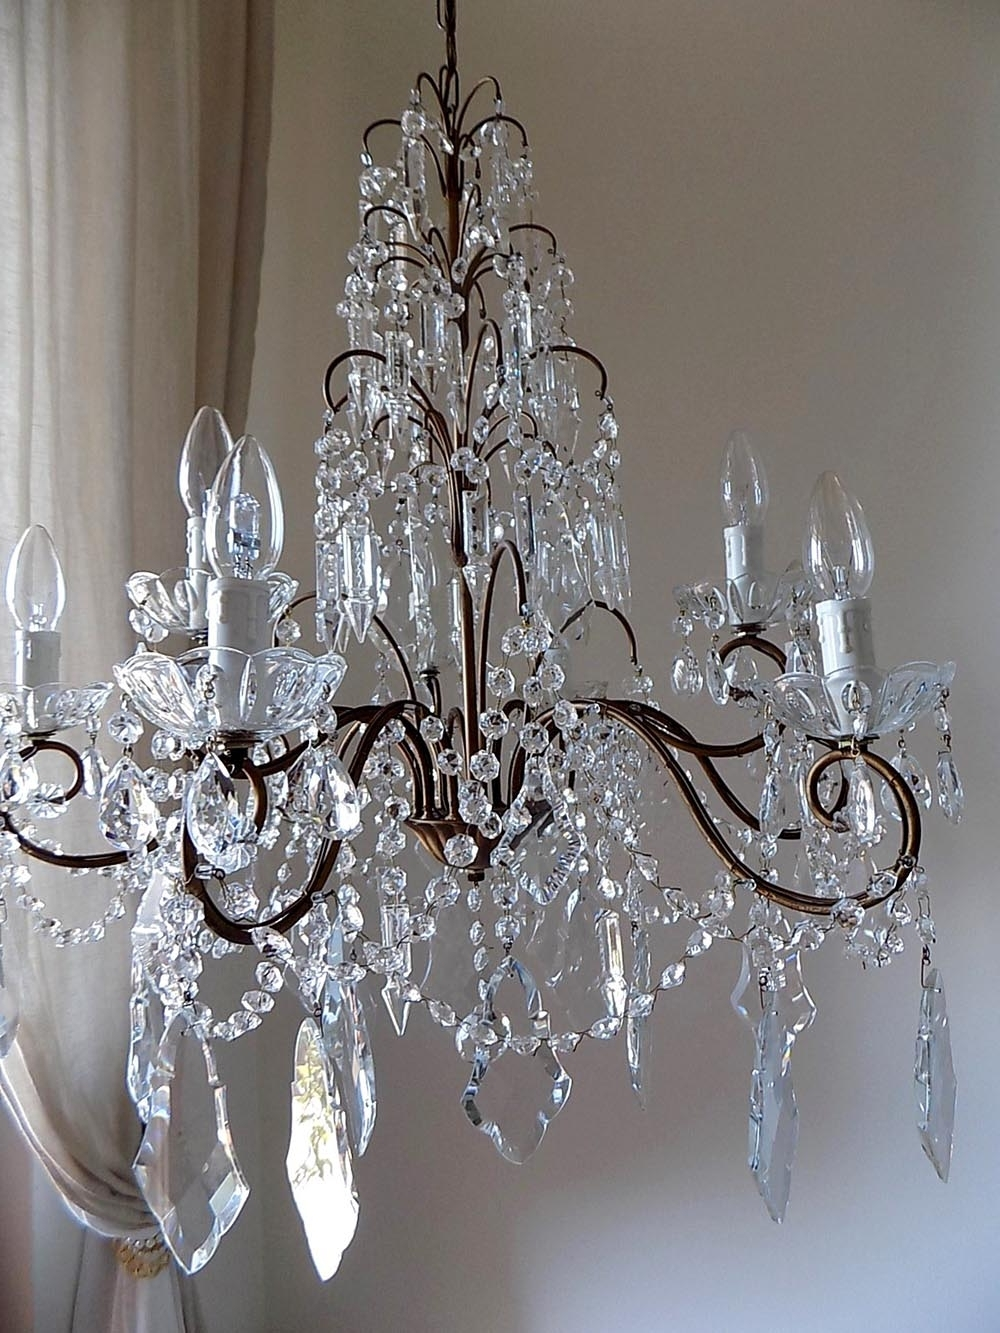 Italian Crystal Chandeliers Antique – Chandelier Designs Regarding Widely Used Vintage Italian Chandeliers (View 15 of 20)